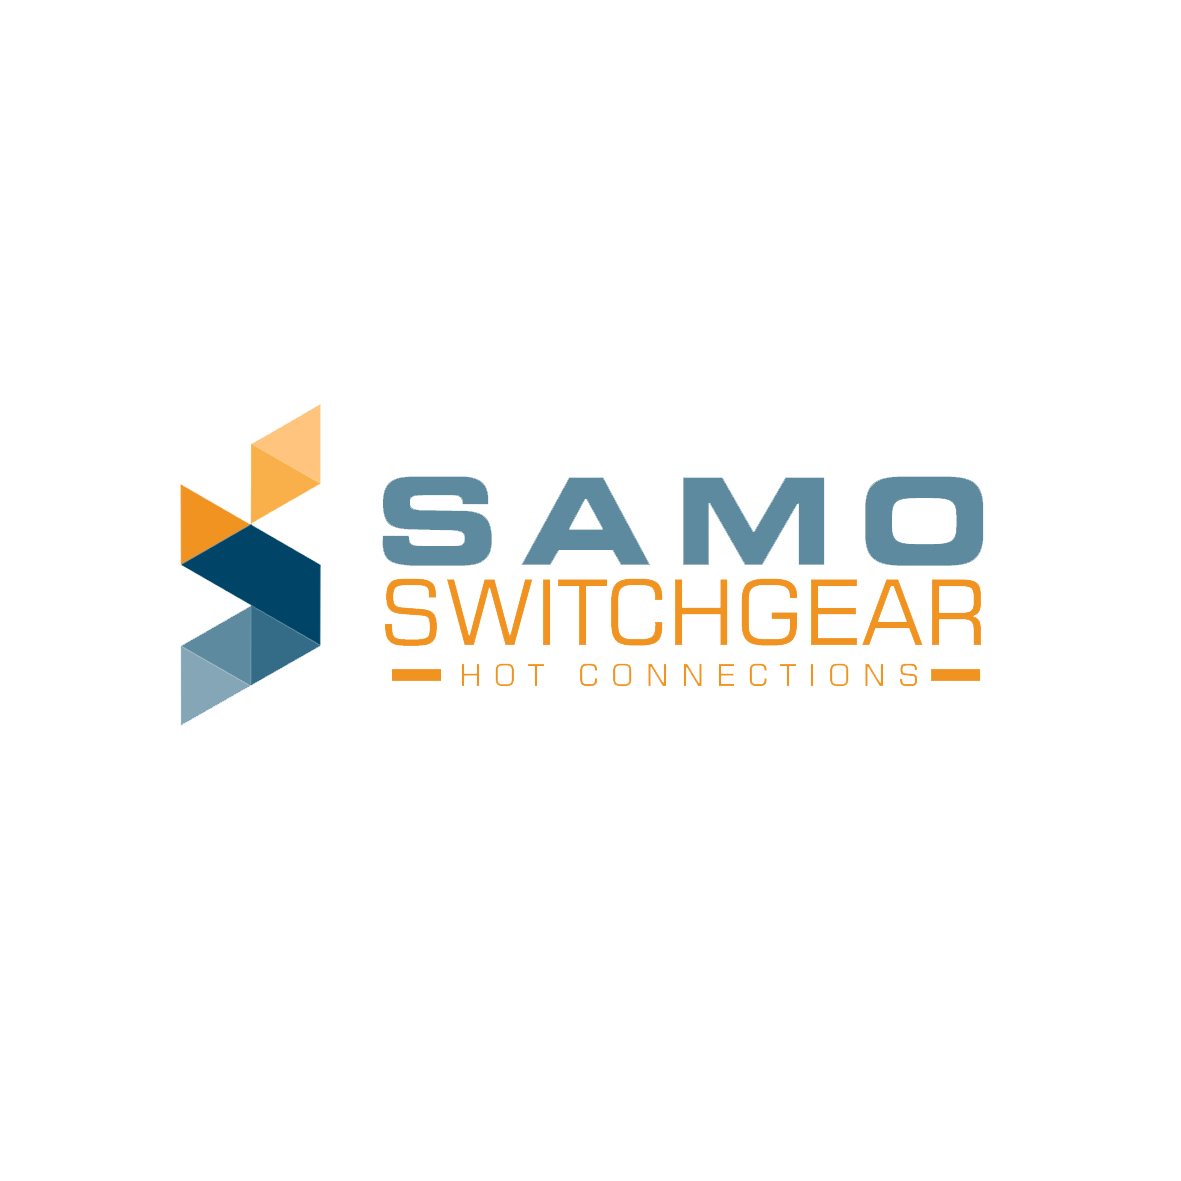 SAMO SWITCHGEAR png